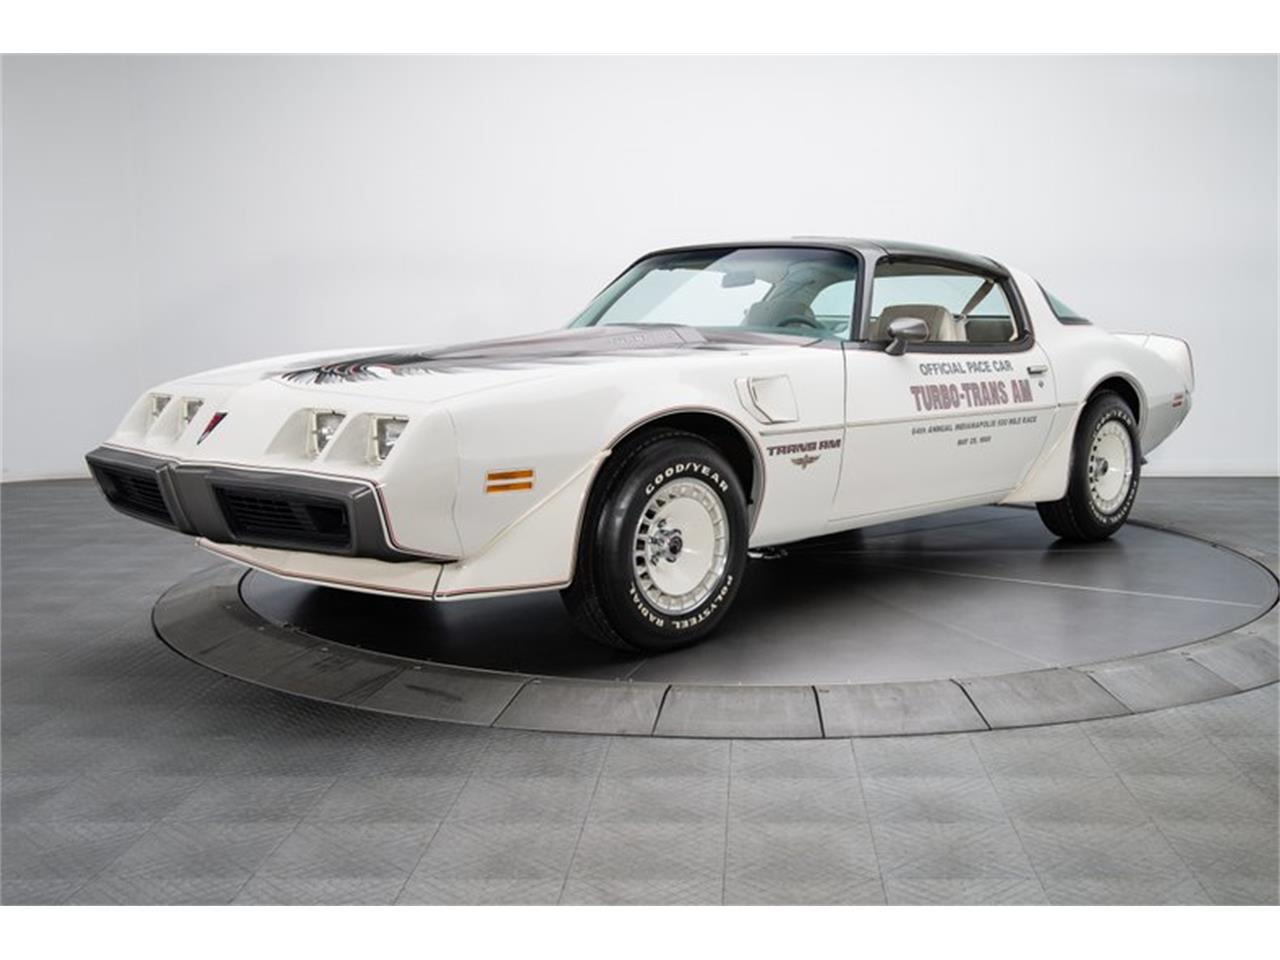 1980 Pontiac Firebird Trans Am Turbo Indy Pace Car Edition for sale in Charlotte, NC – photo 73